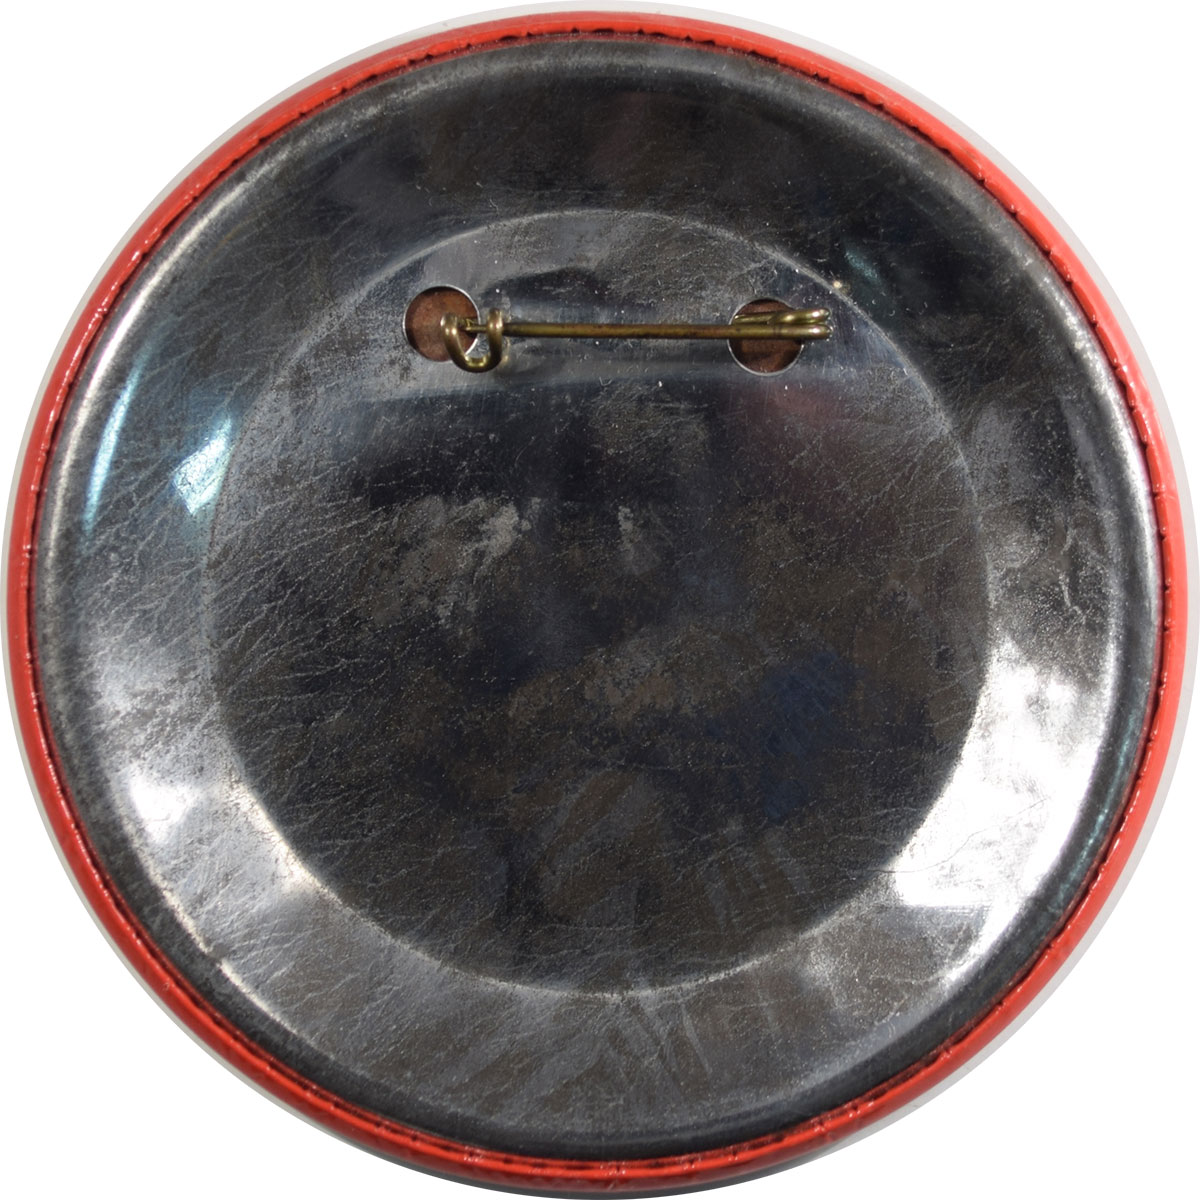 Other Collectibles 1956 4″ STEVENSON-KEFAUVER JUGATE CAMPAIGN BUTTON; SCARCE VARIETY near-MINT